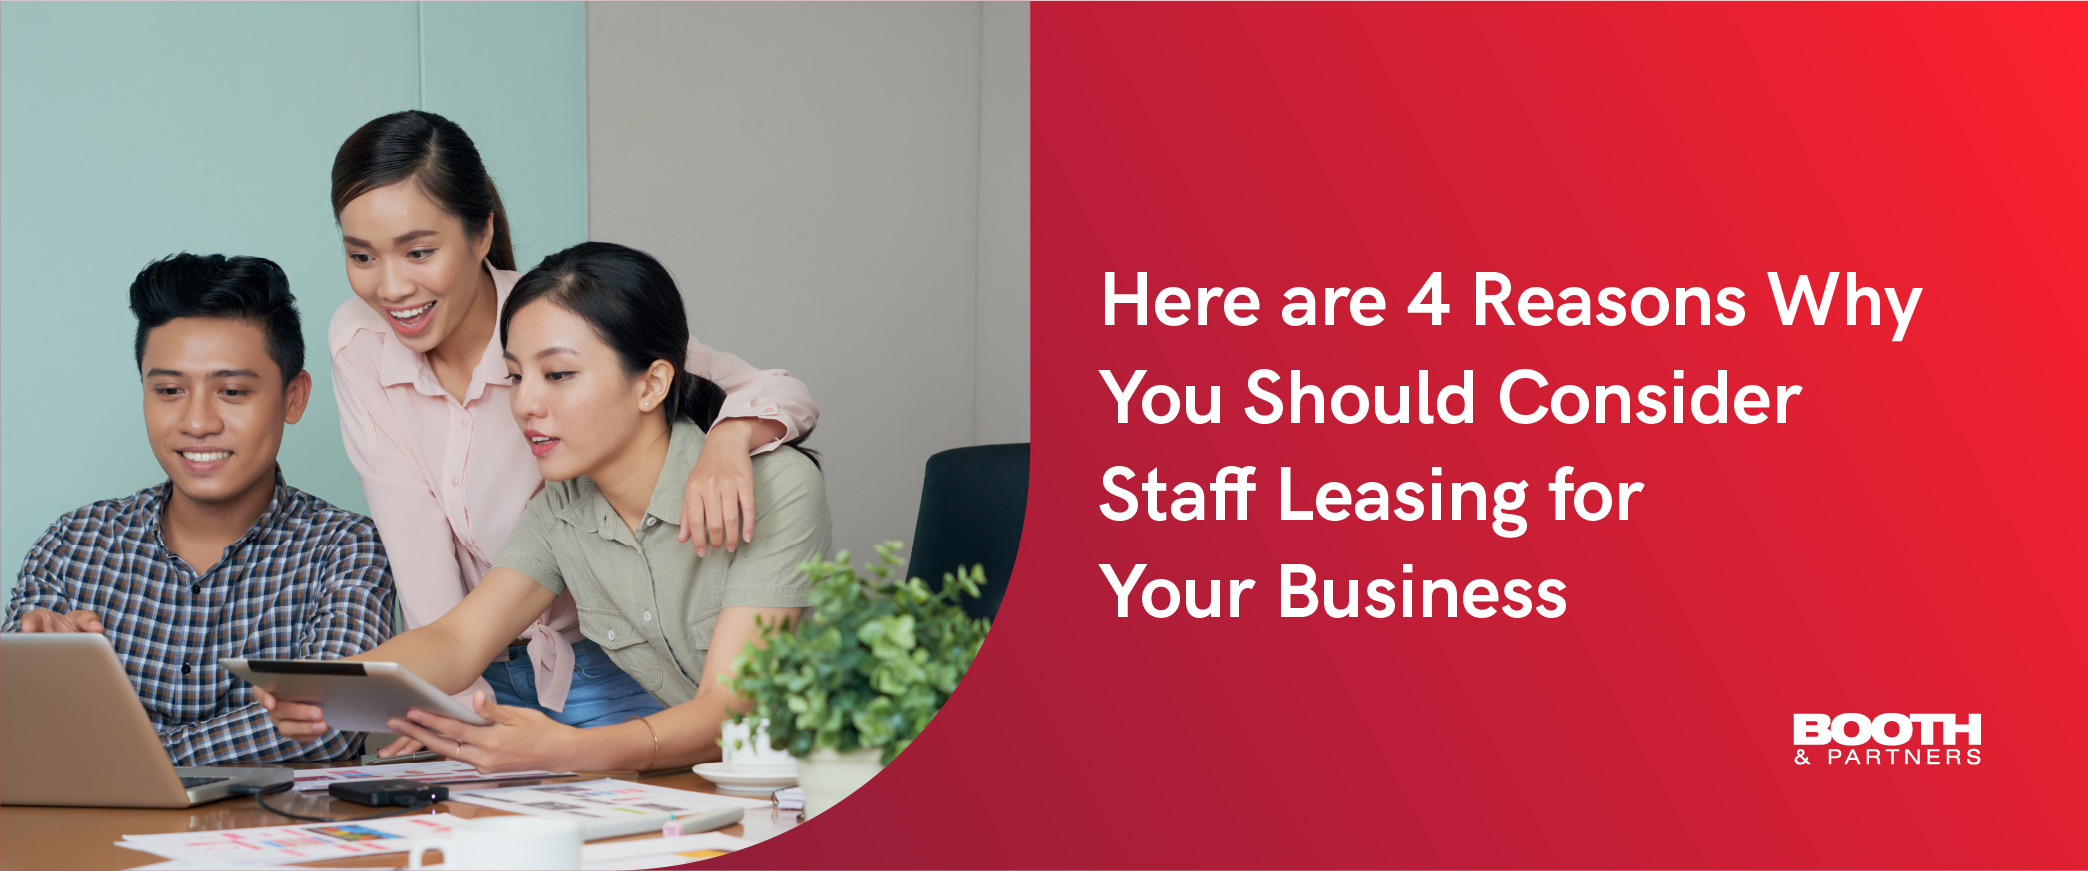 4 Reasons Why You Should Consider Staff Leasing for Your Business